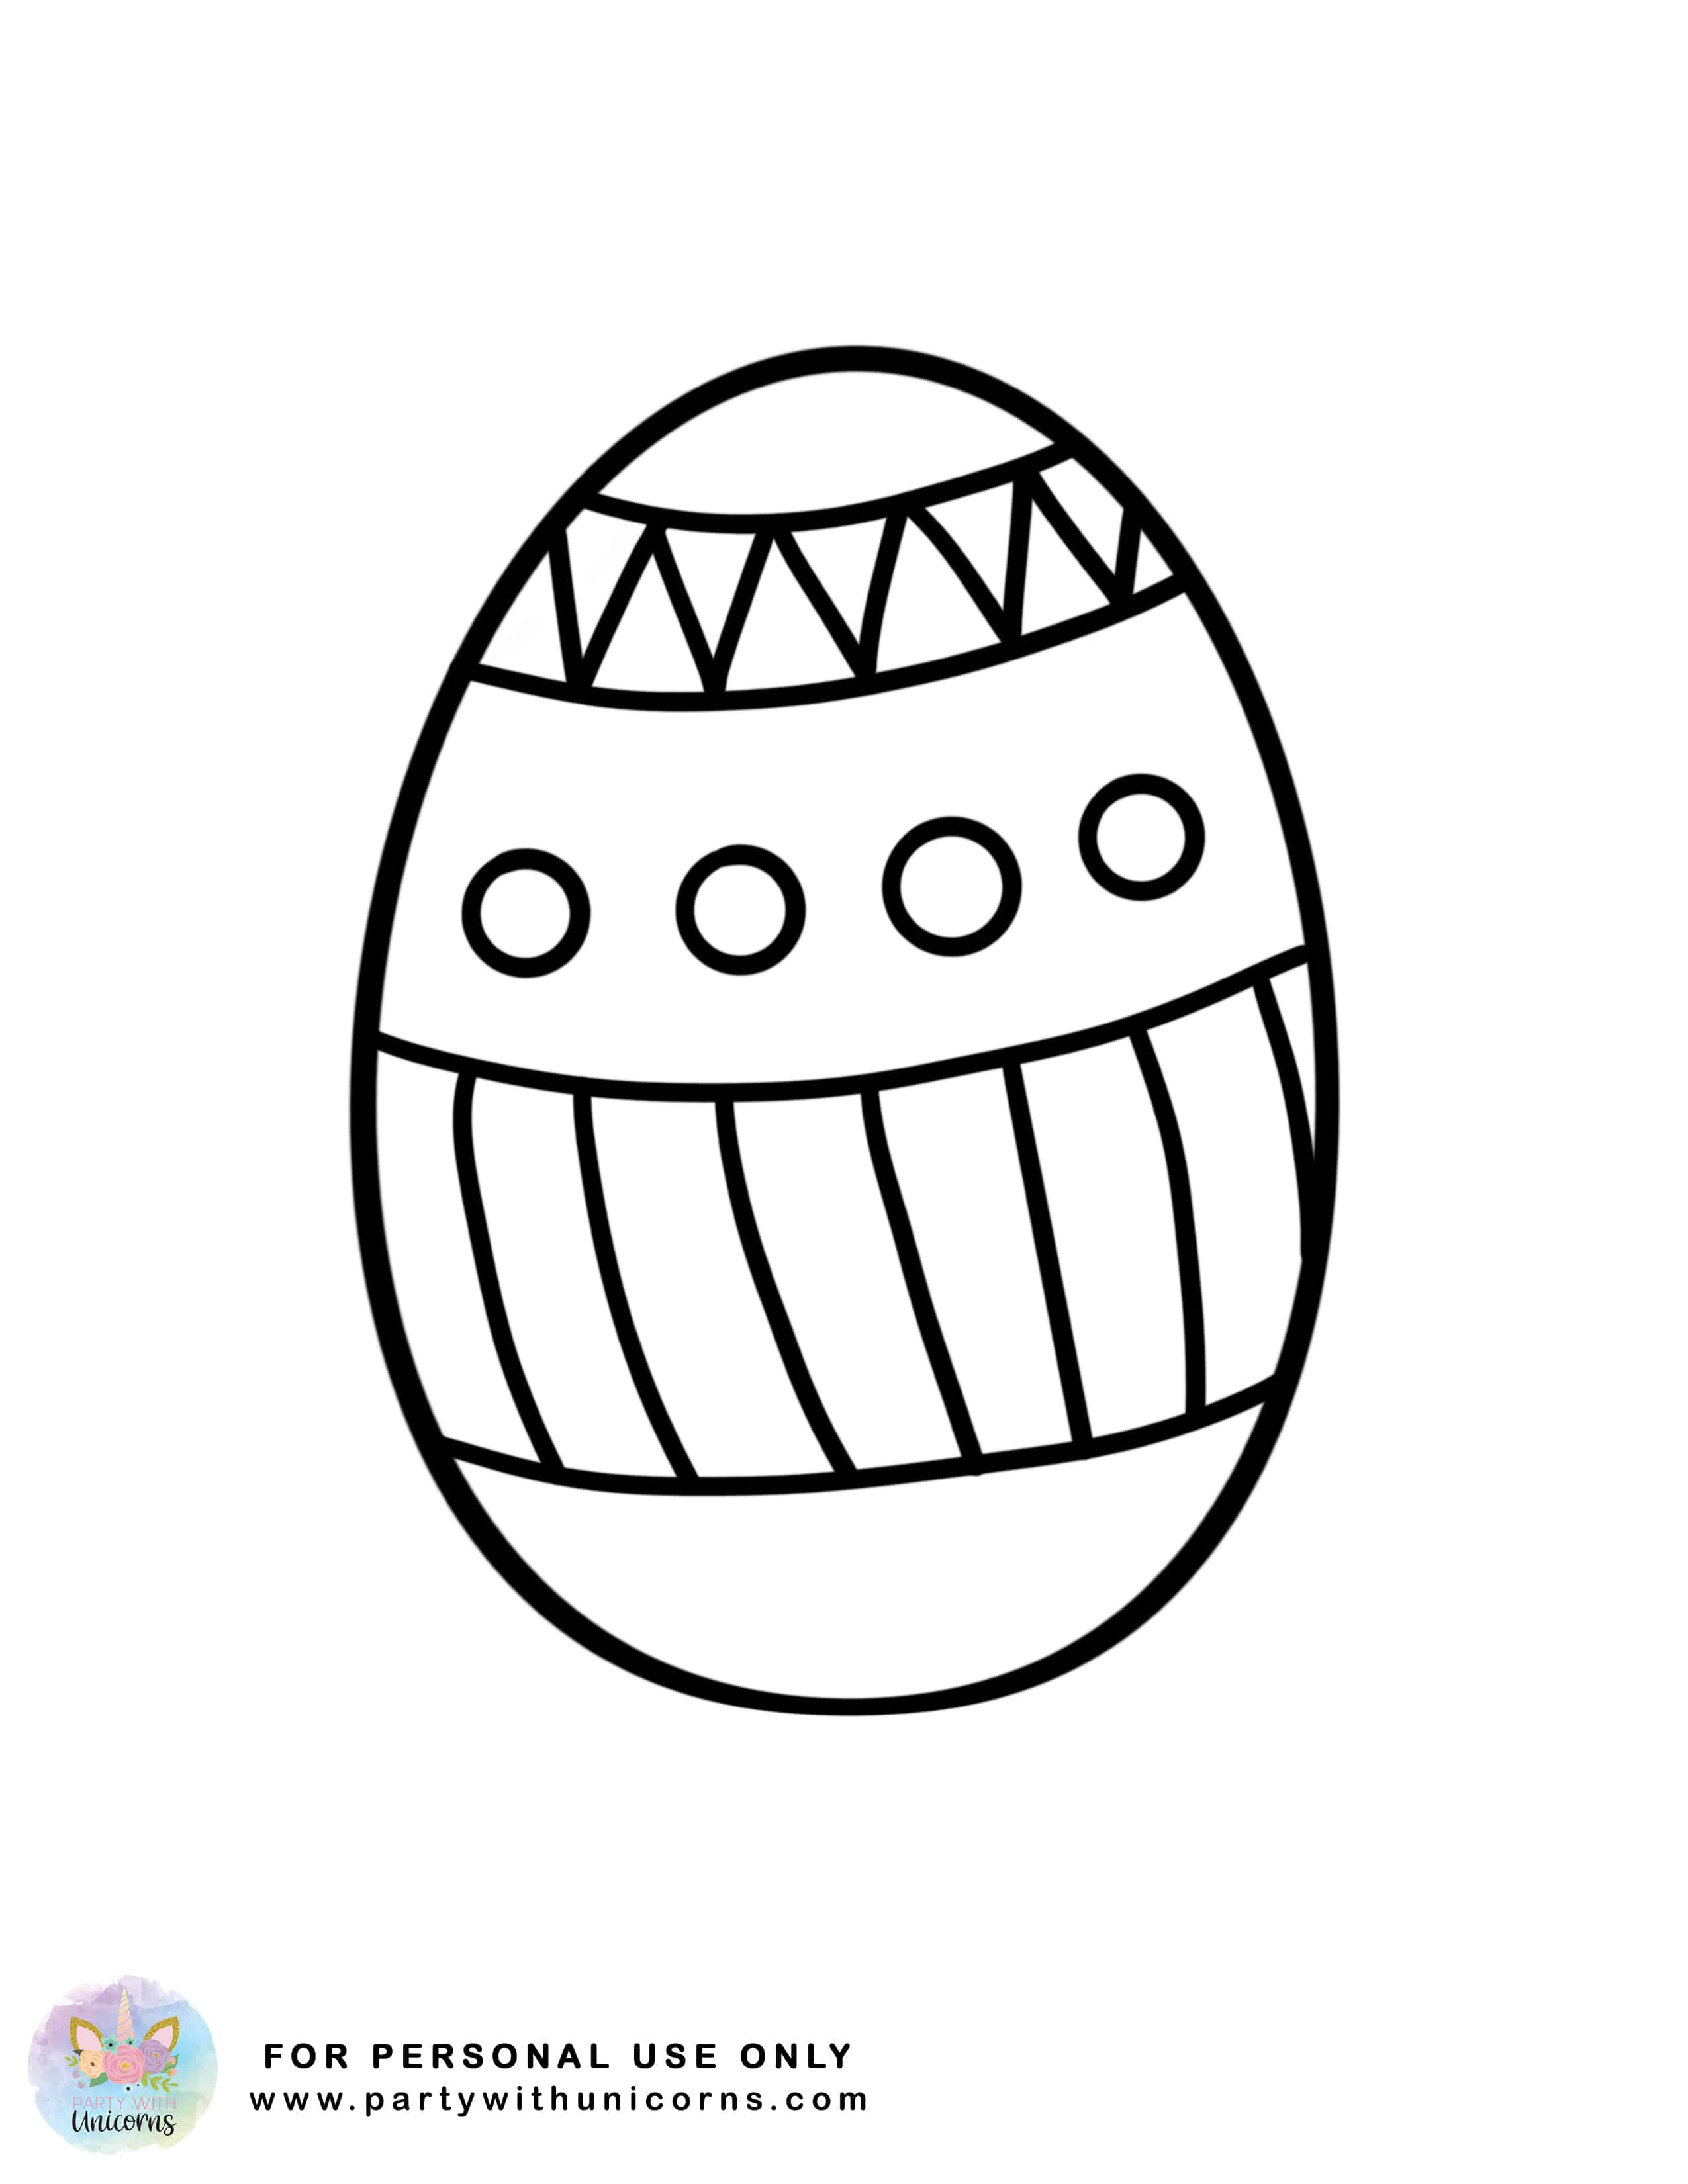 Easter Coloring Sheets | Free Download | Party with Unicorns